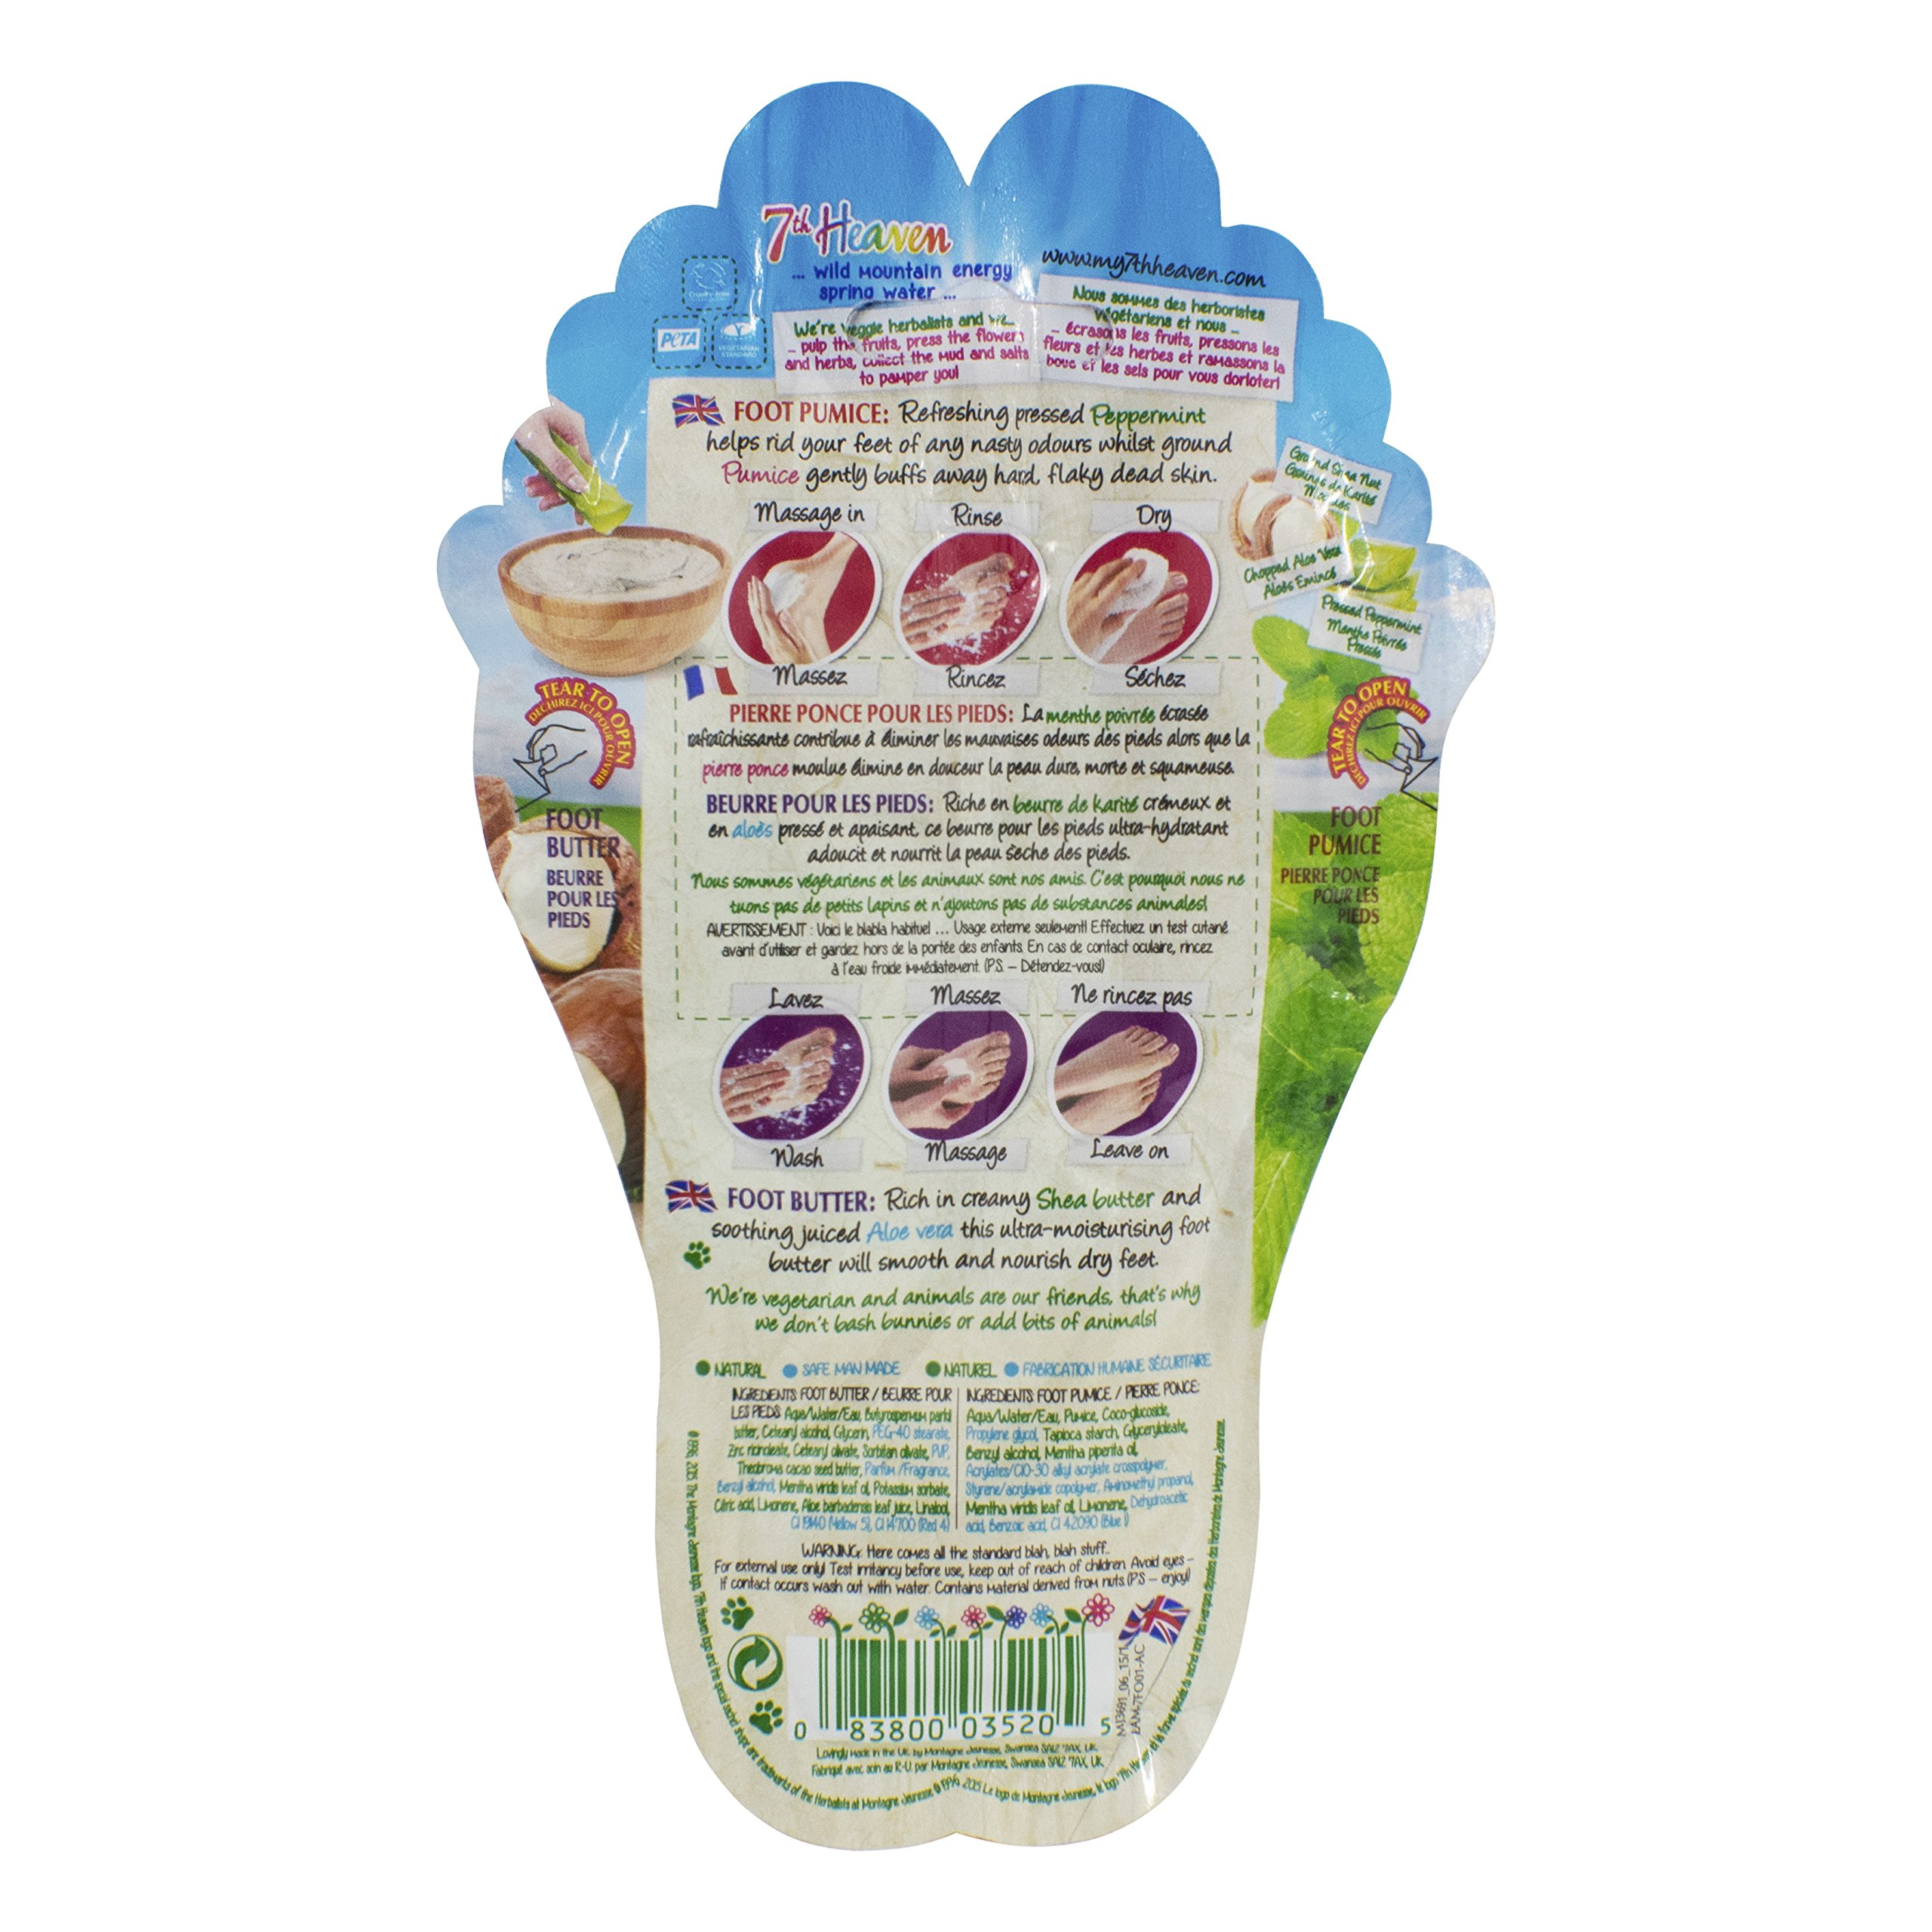 7th Heaven Foot Pumice & Foot Butter Combo Packet (Pack of 12)